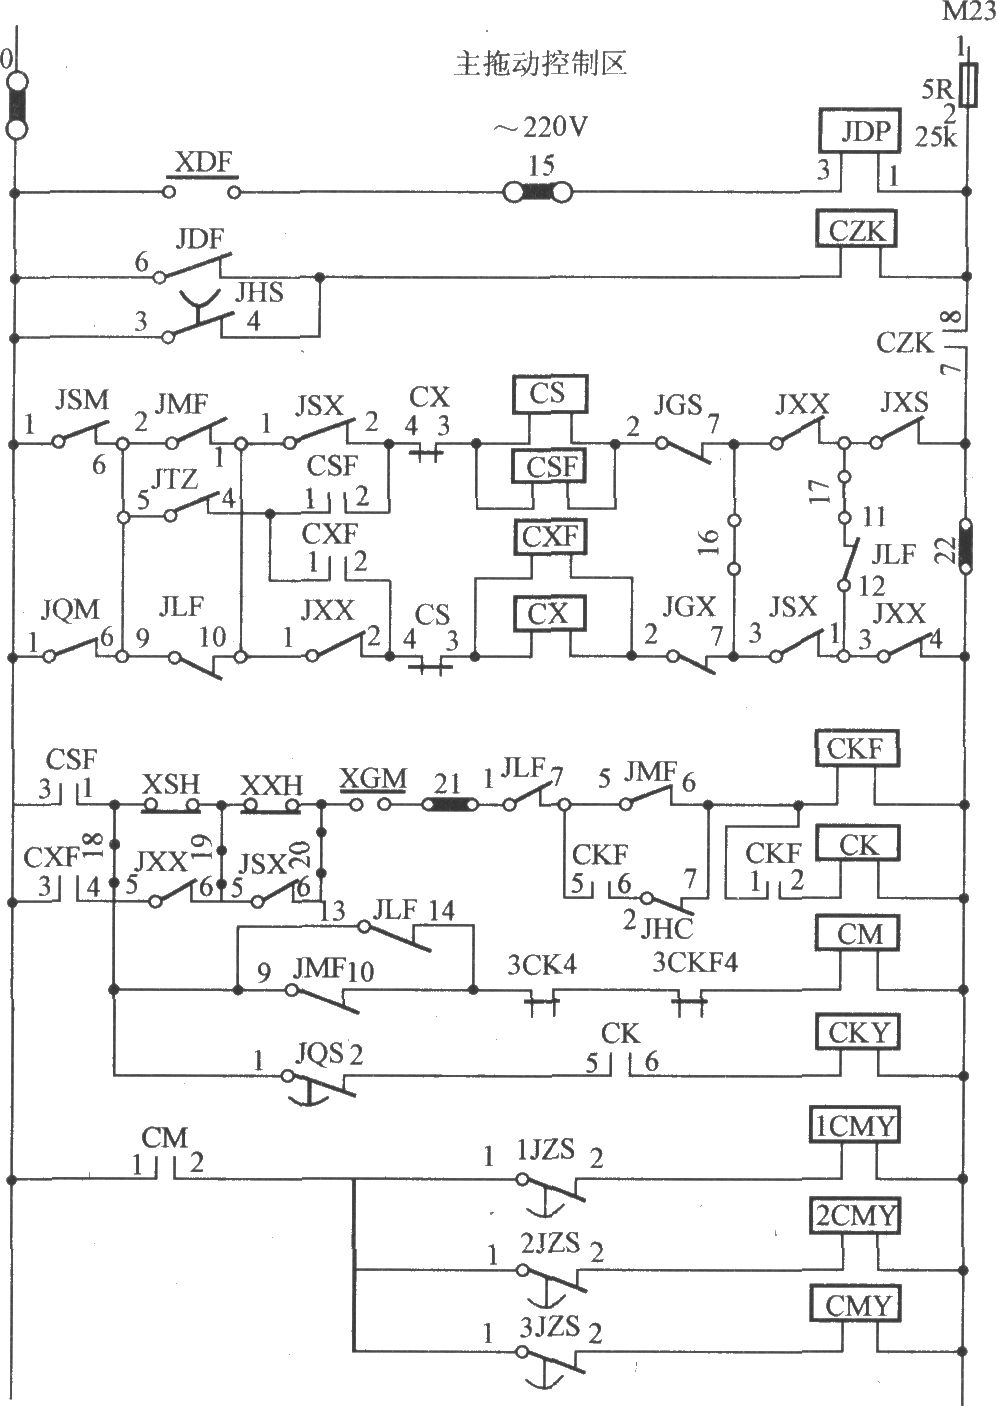 hight resolution of lift control wiring diagram wiring diagram detailed 2007 gmc yukon wiring diagram lift wiring diagram